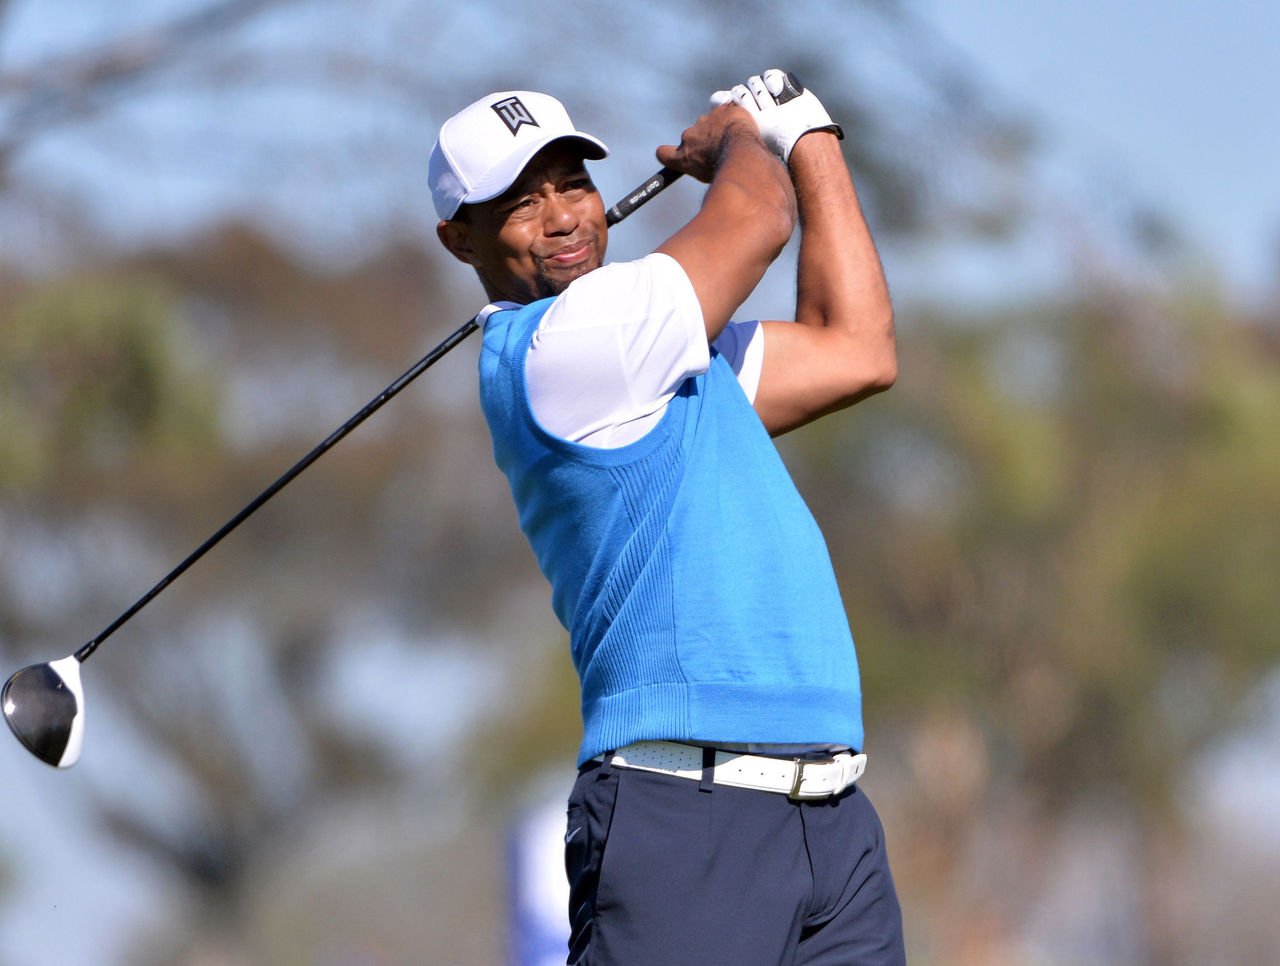 Cropped 2017 01 26t224641z 1946358986 nocid rtrmadp 3 pga farmers insurance open first round